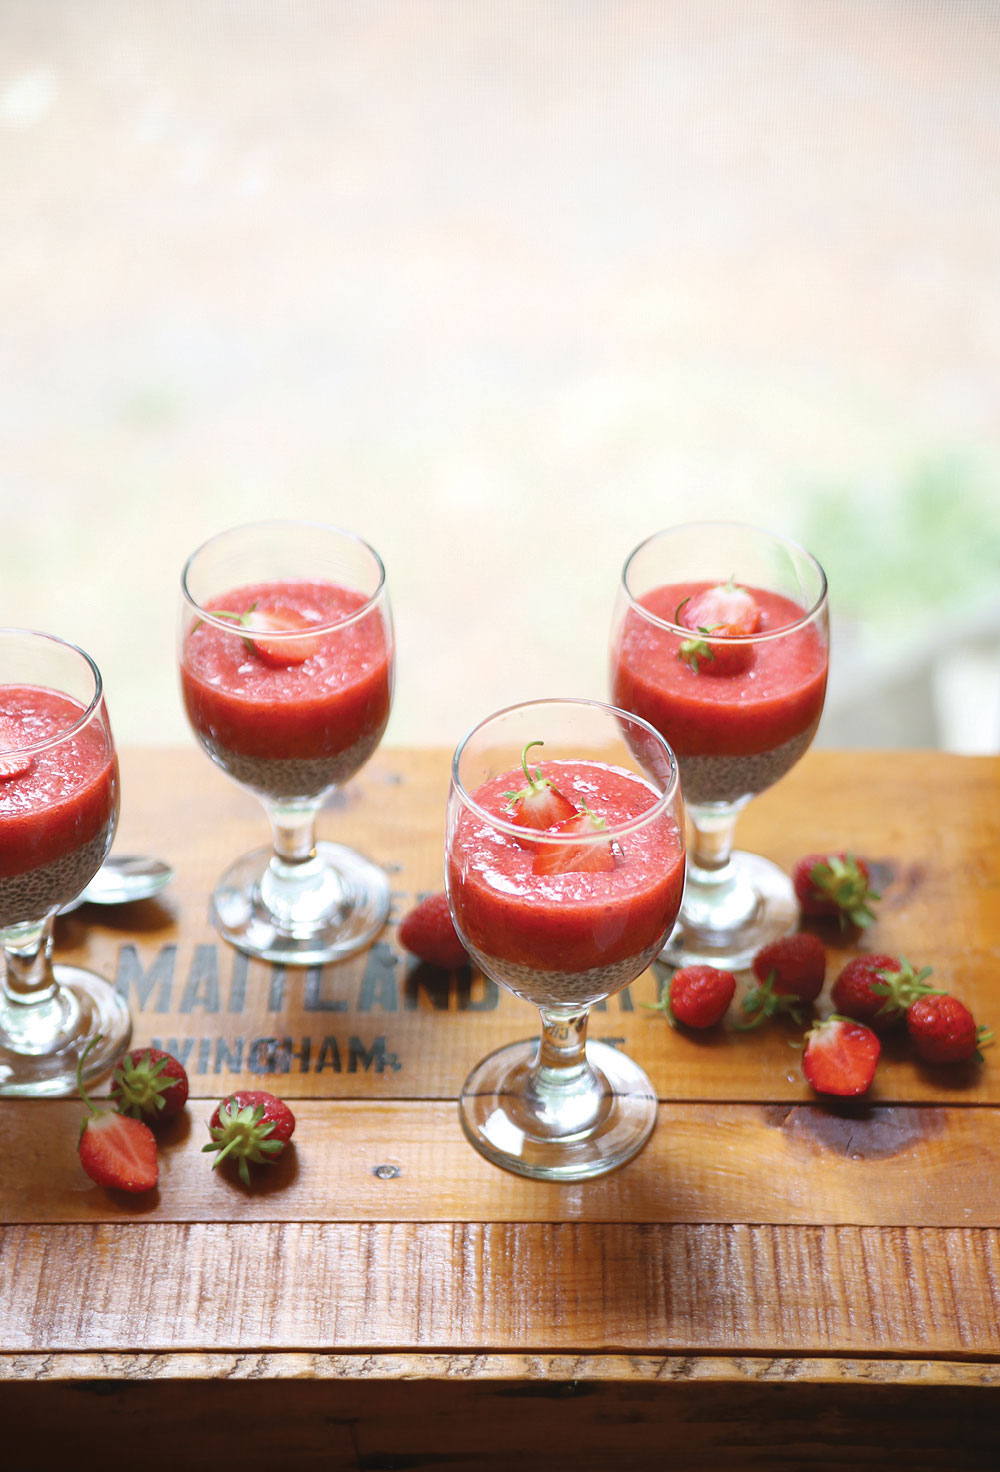 Strawberry-Puree-Chia-Pudding-Pure-Ella-Leche4